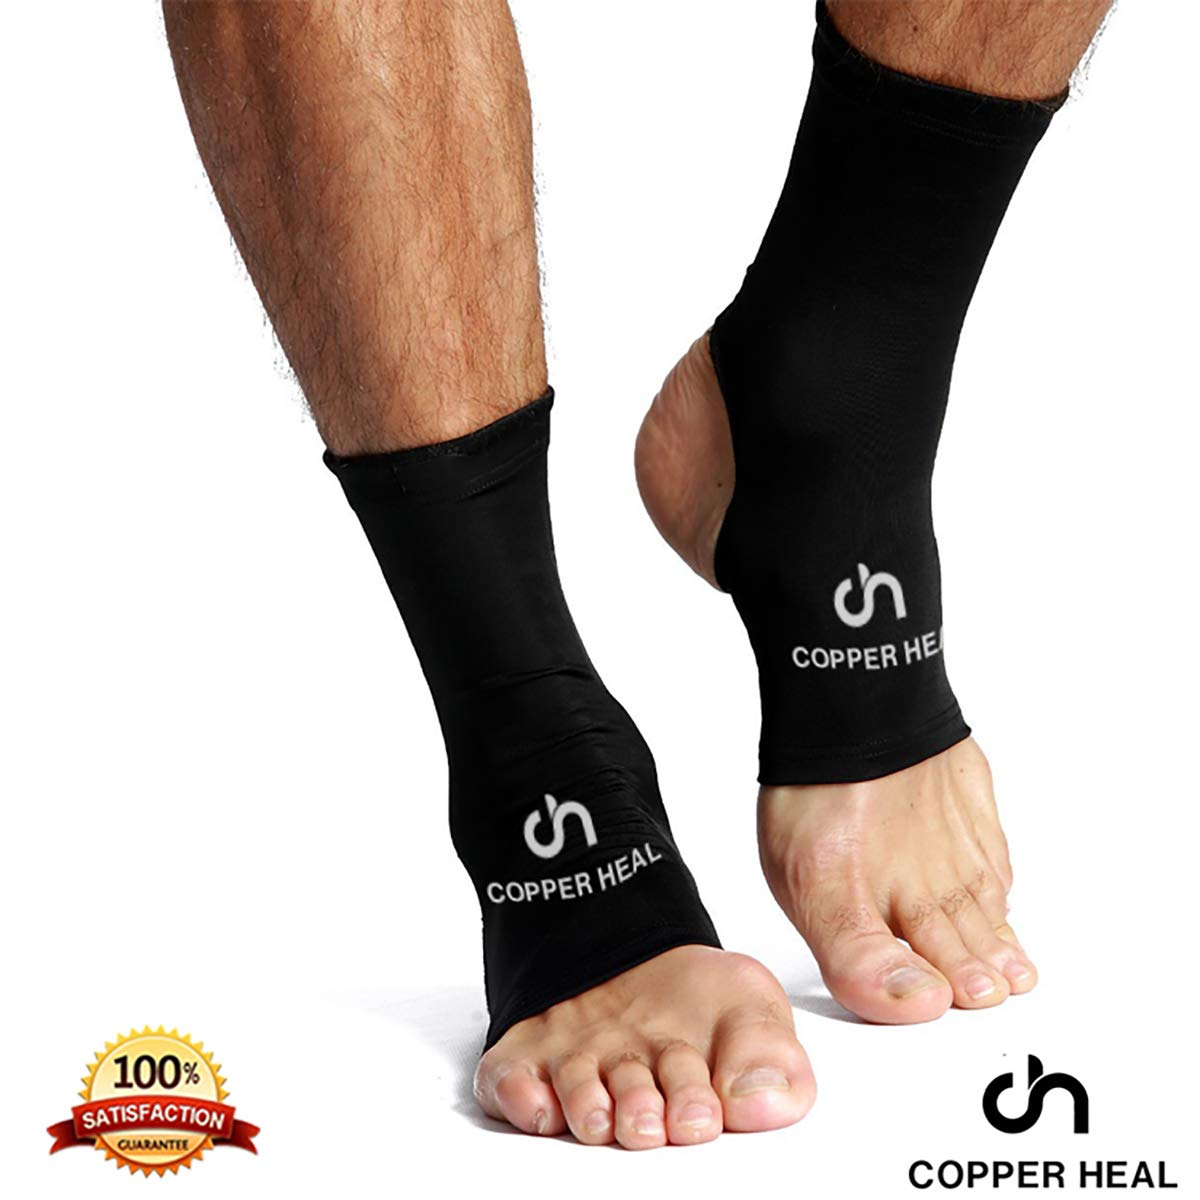 Amazon.com: COPPER HEAL Ankle Compression Sleeve (Pair) - Highest Copper Infused Brace Socks Arch Support Foot Swelling Achilles Tendon Joint Pain Plantar ...